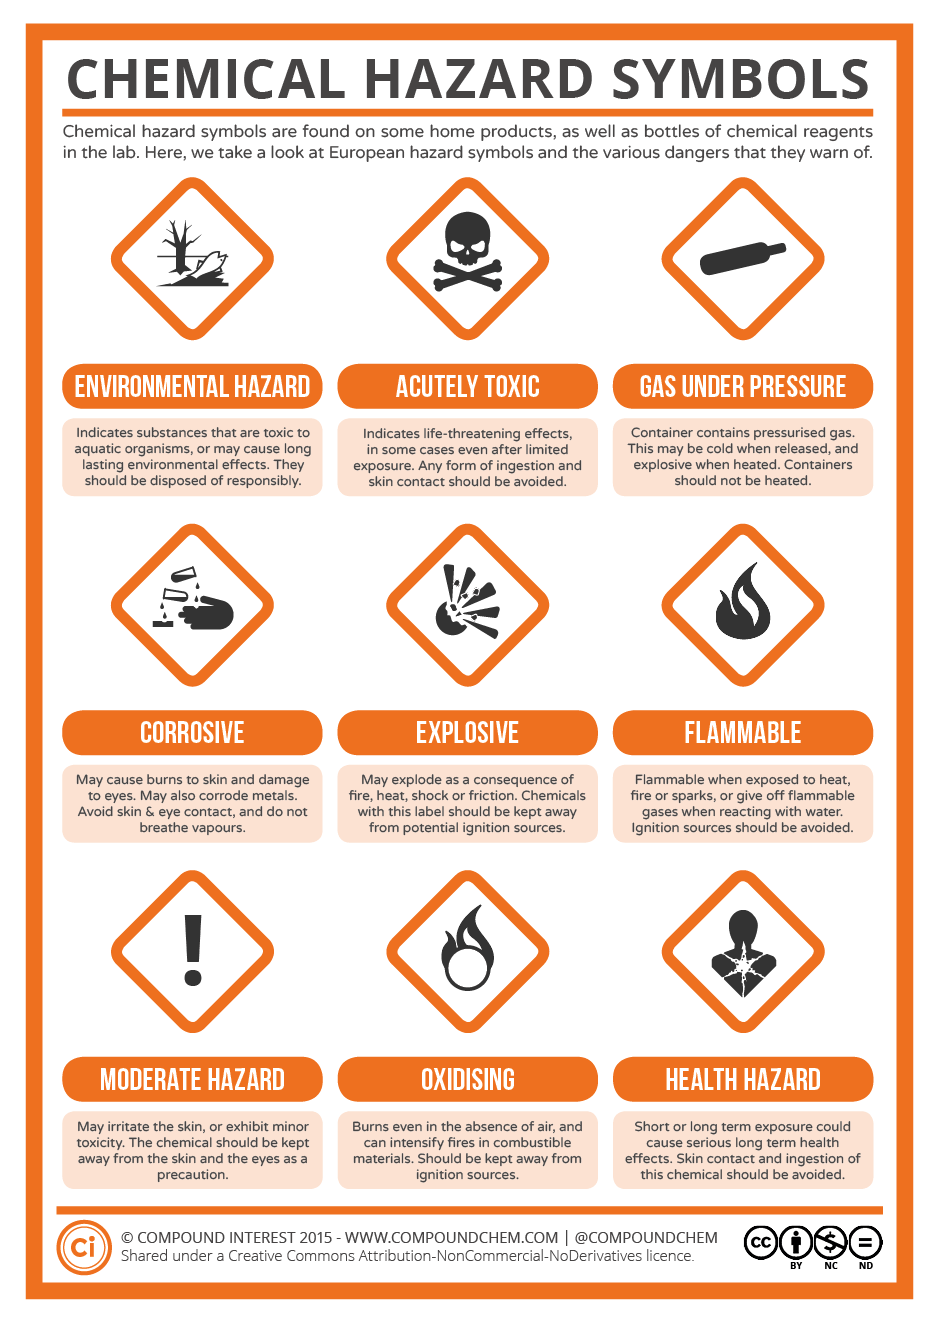 Compound interest a guide to chemical hazard symbols a guide to chemical hazard symbols biocorpaavc Gallery